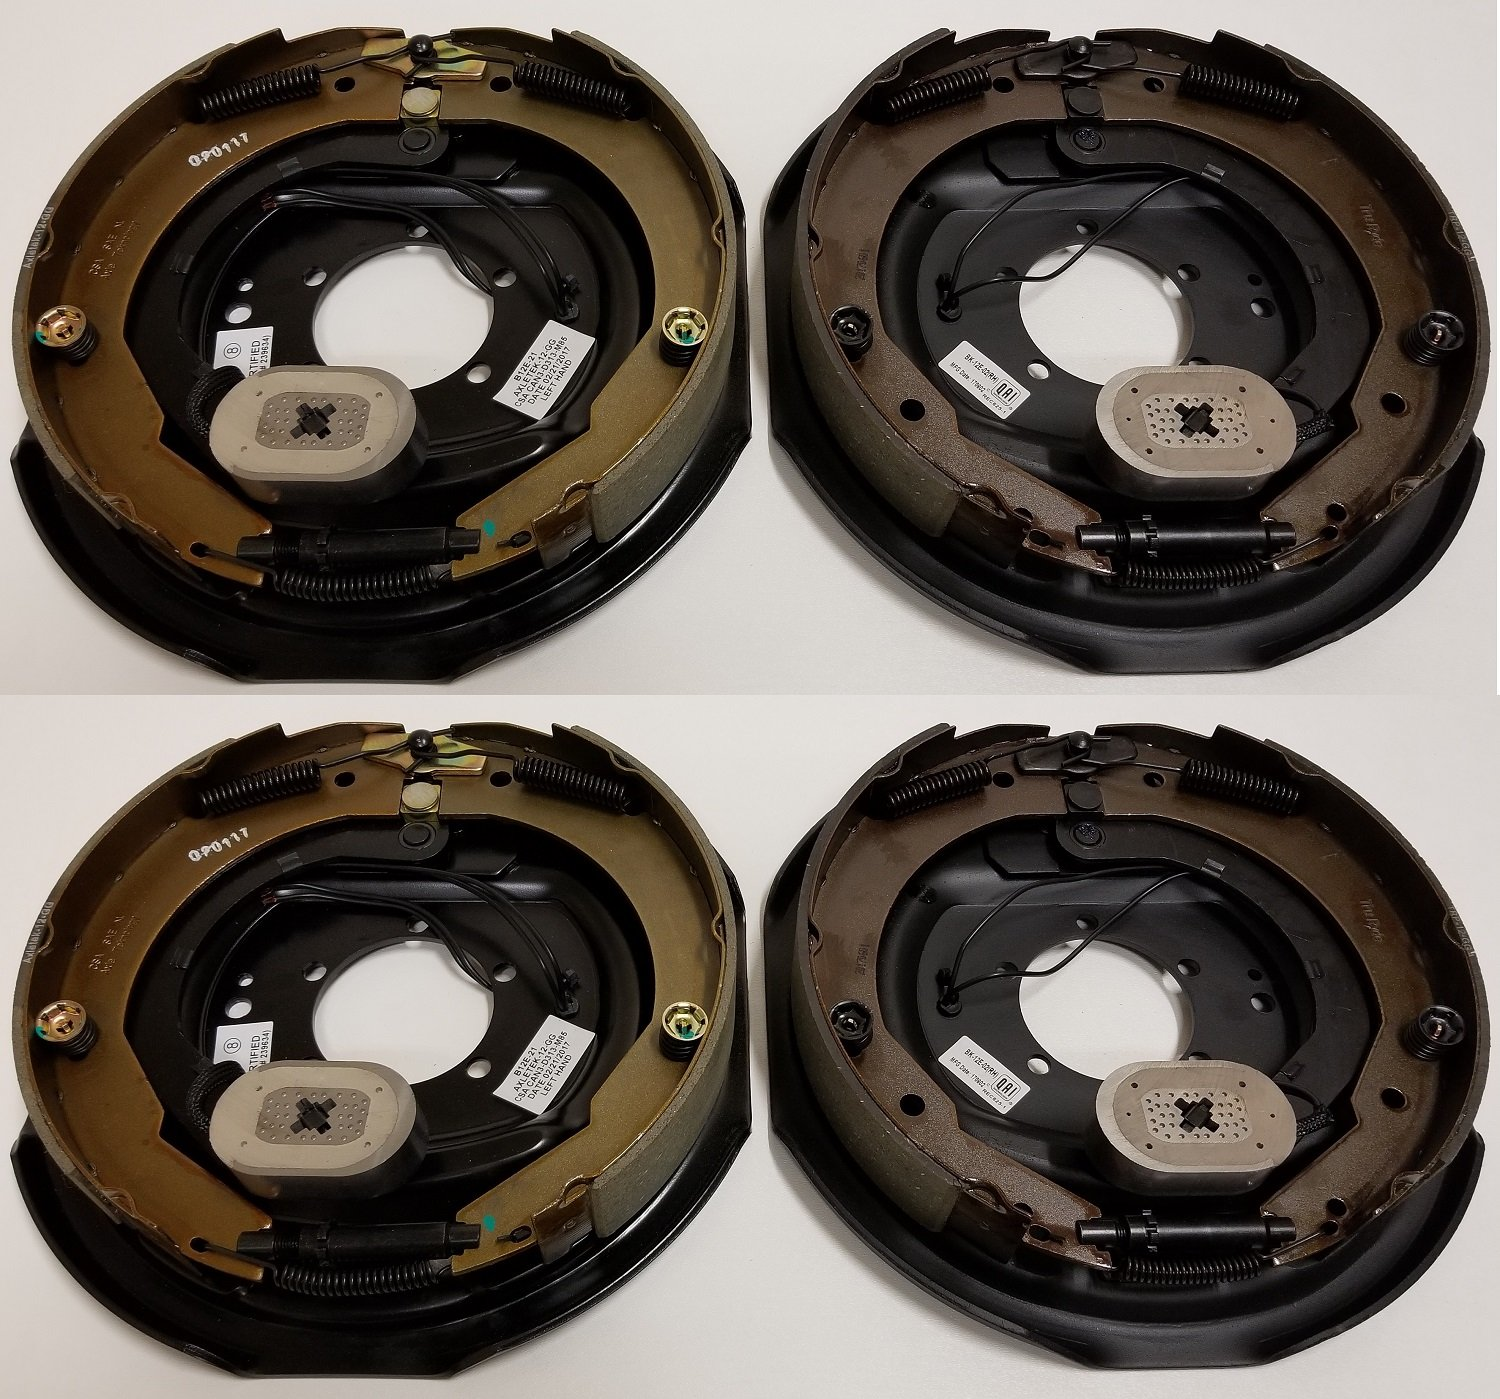 Trailer Brake Assembly Electric Trailer Brakes 12'' x 2'' - 2 right & 2 left 5200 6000 7000 lb axles by Ei